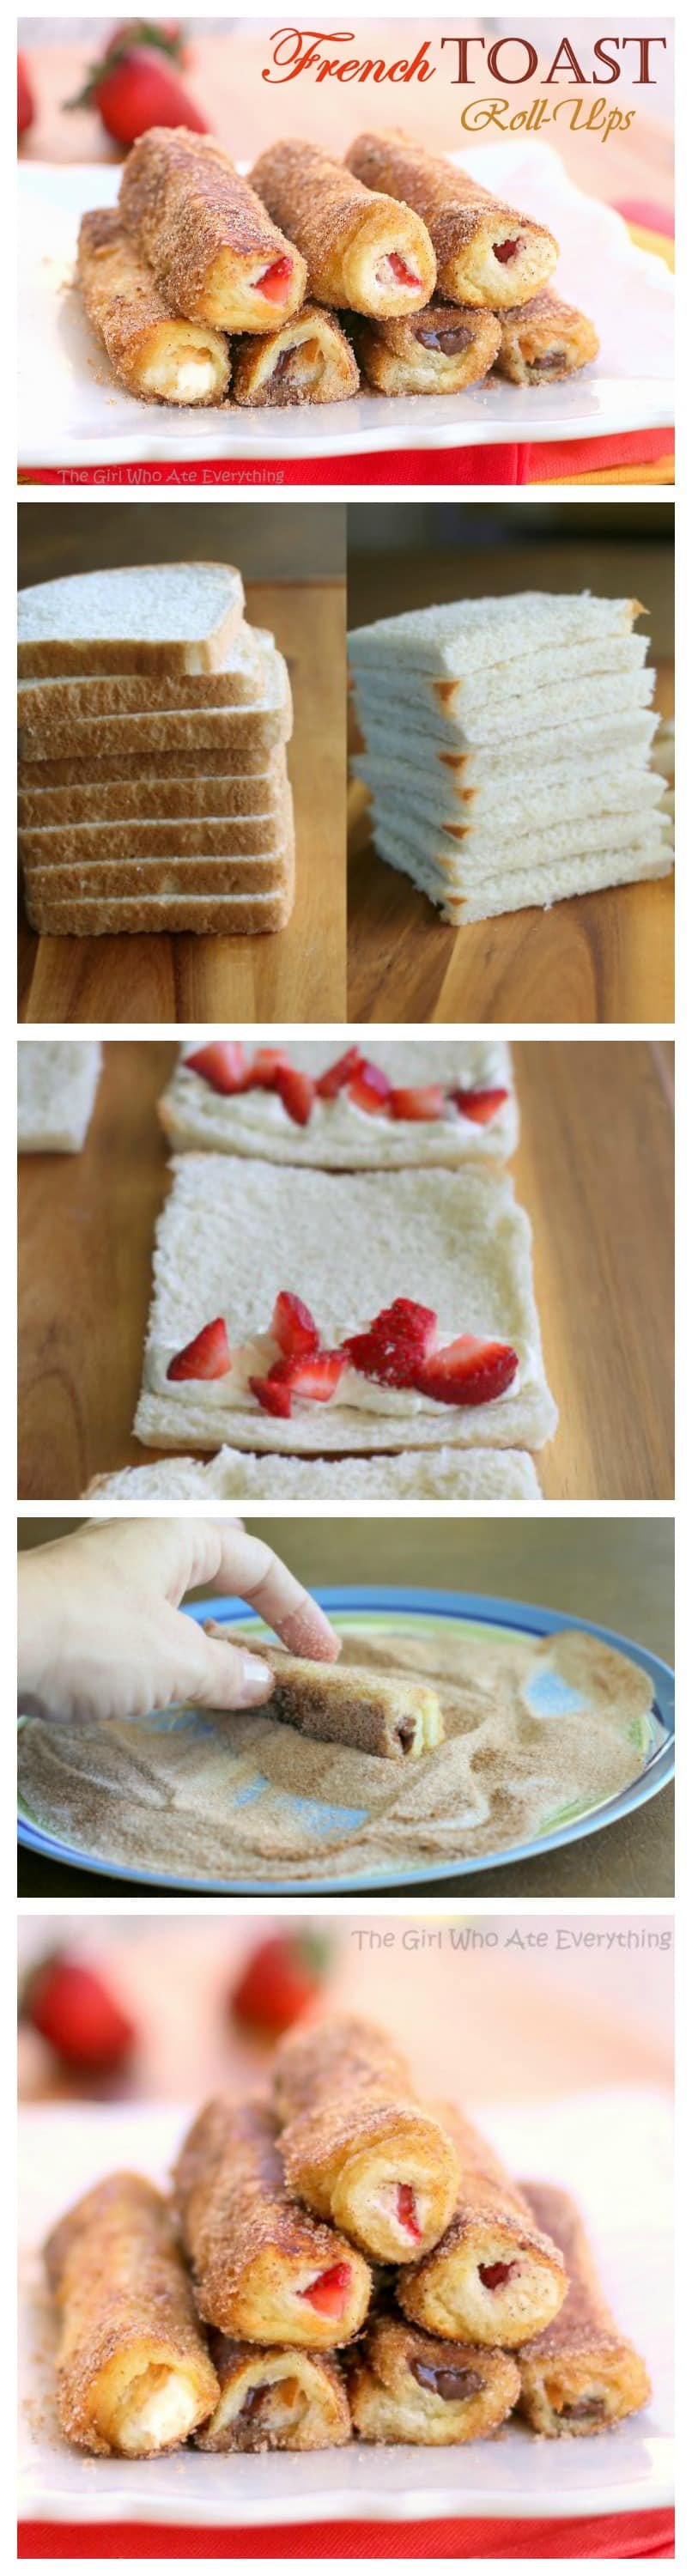 French Toast Roll-Ups - cream cheese, fruit, or whatever fillings you ...